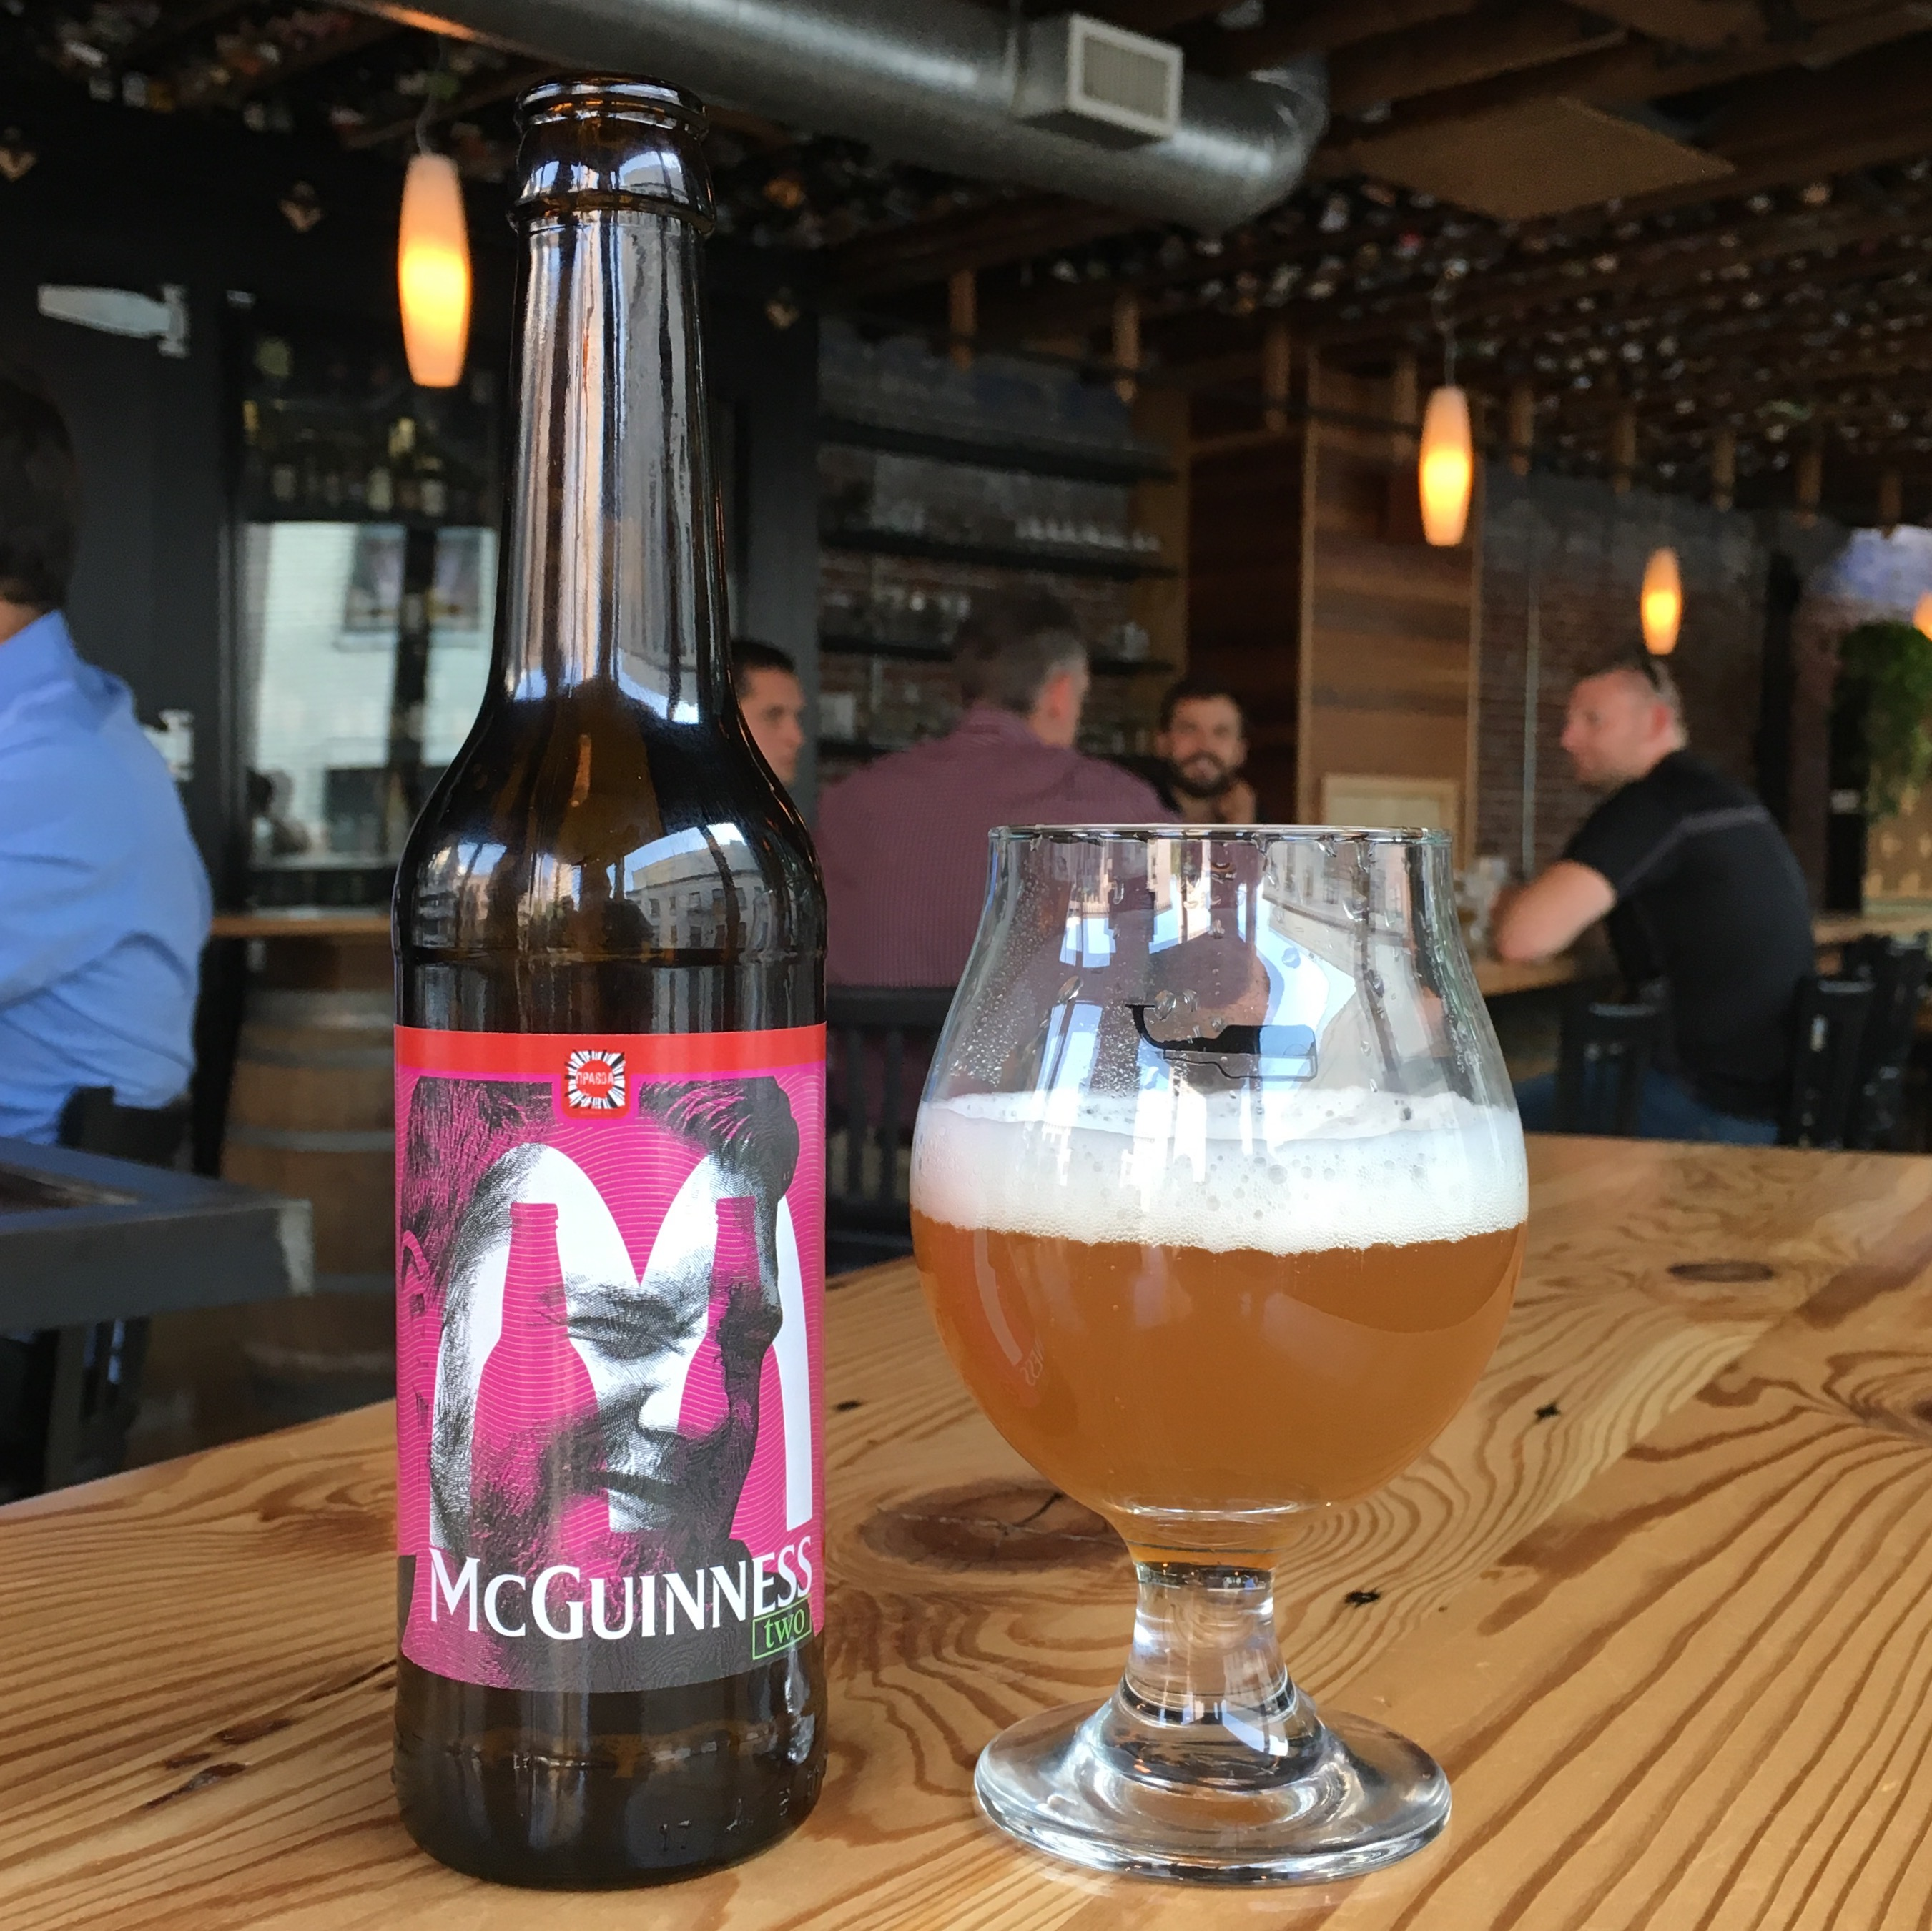 Cory McGuinness has his own beer from Pravda Beer Theater in Lviv, Ukraine.